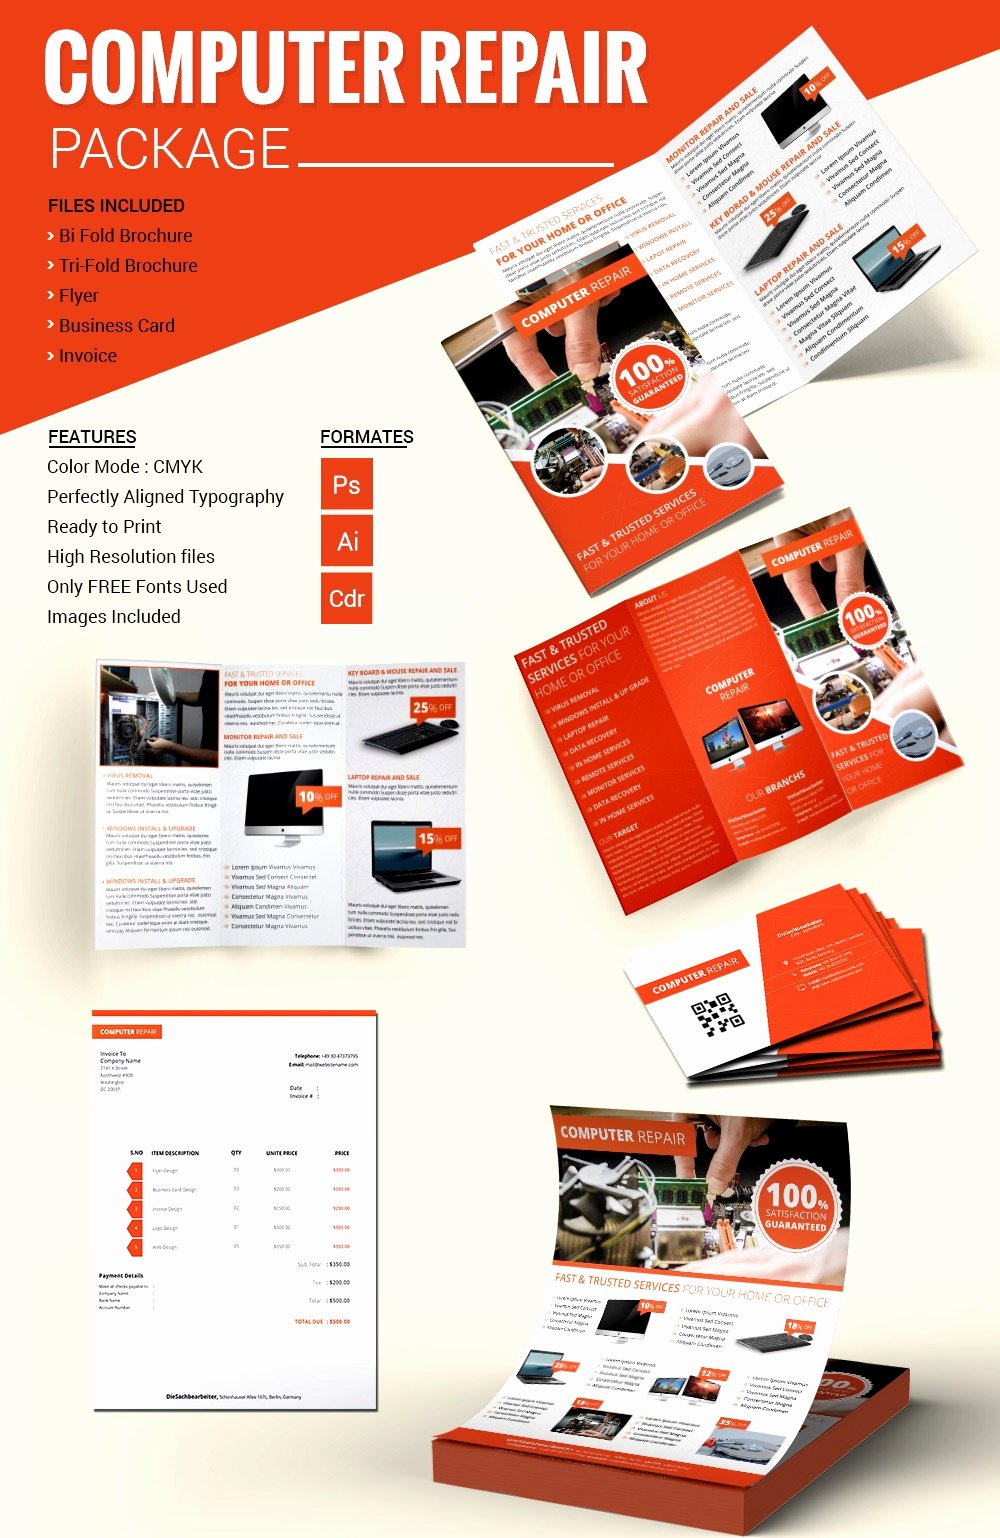 Computer Repair Flyer Template Elegant Puter Repair Flyer Template Free Psd Ai format Downl